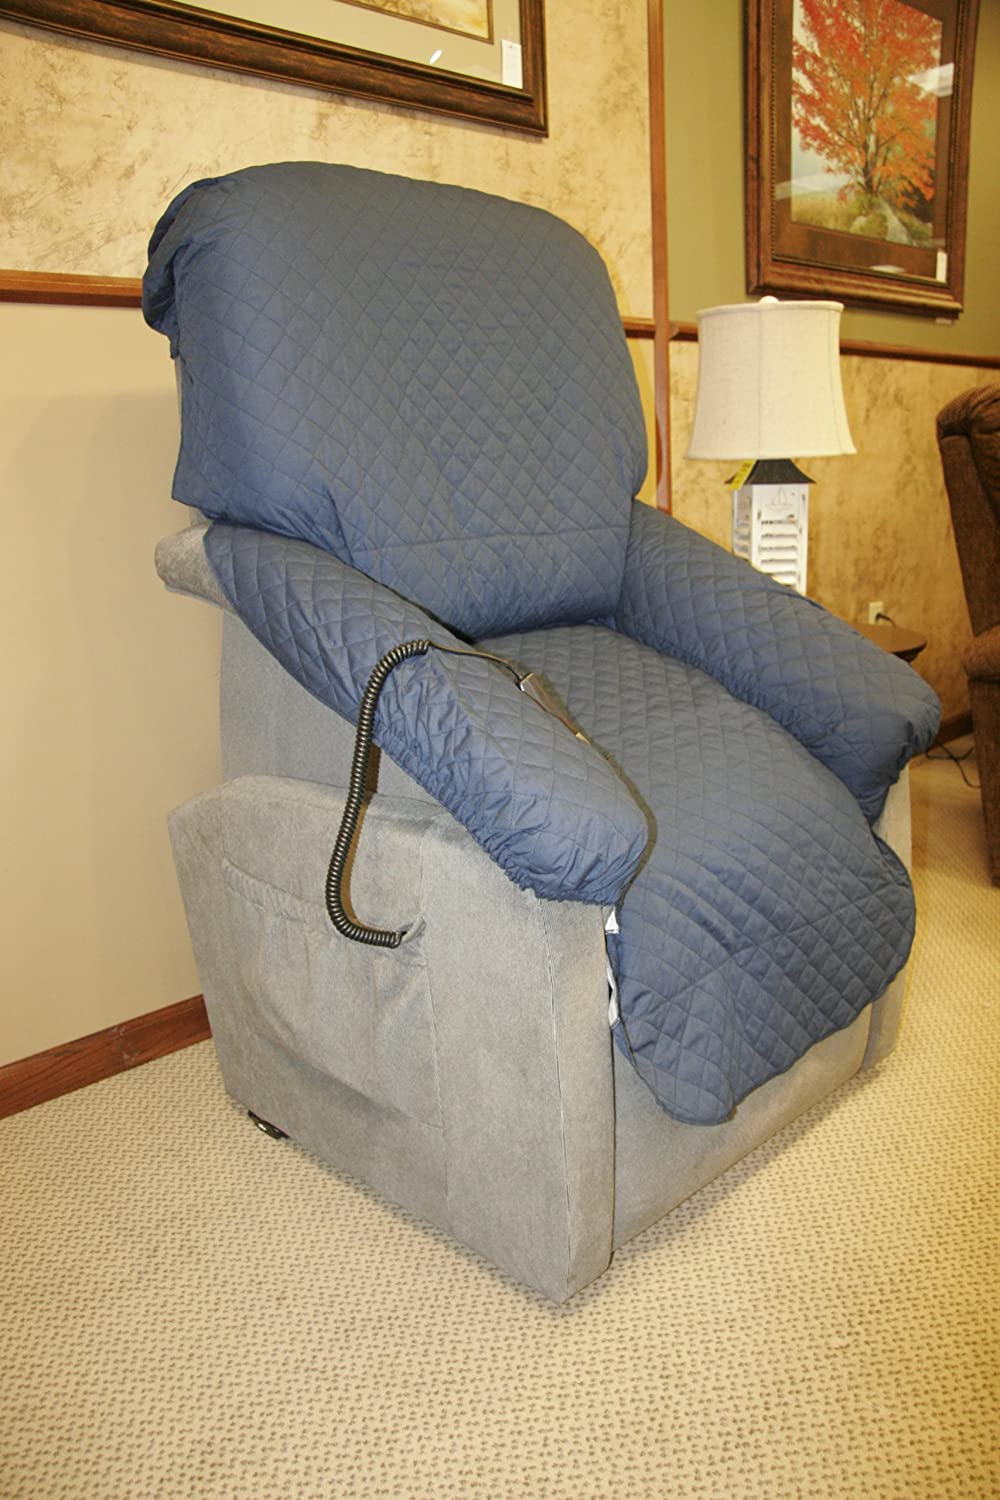 recliner slipcovers lazy for pattern boy chair slipcover covers